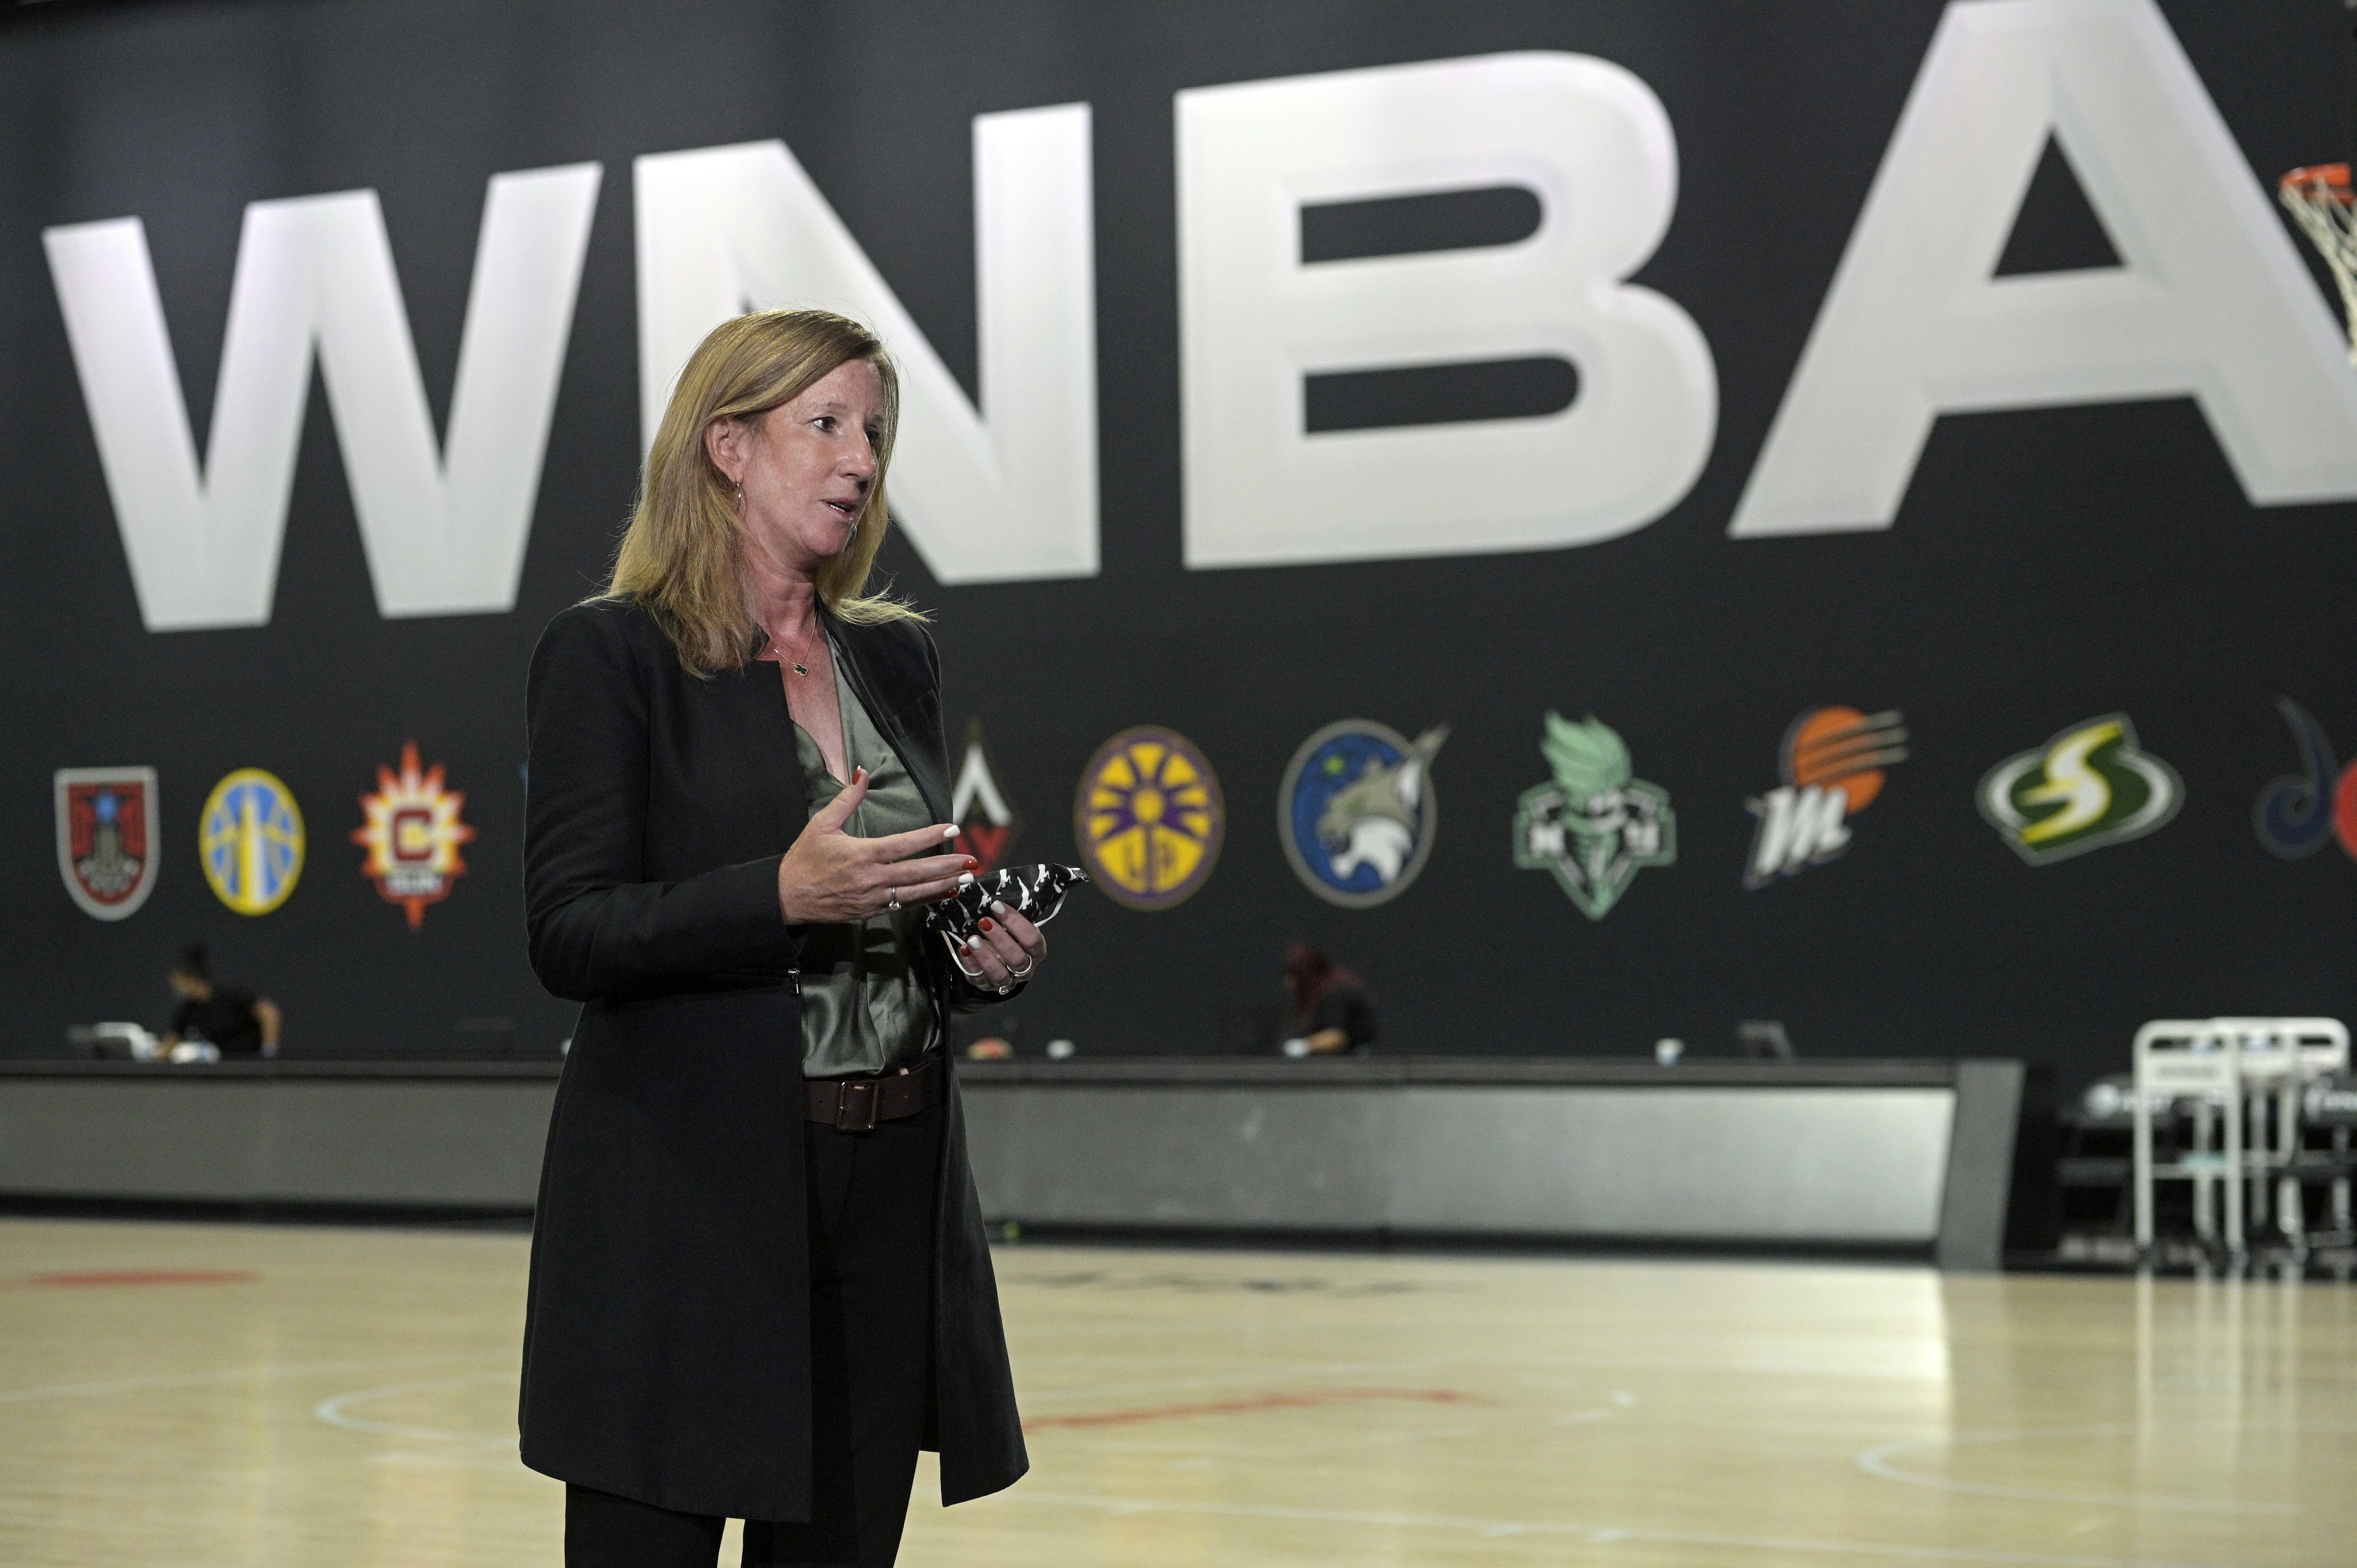 bostonglobe.com - Gary Washburn - WNBA looking to parlay women's college basketball interest into the pro game